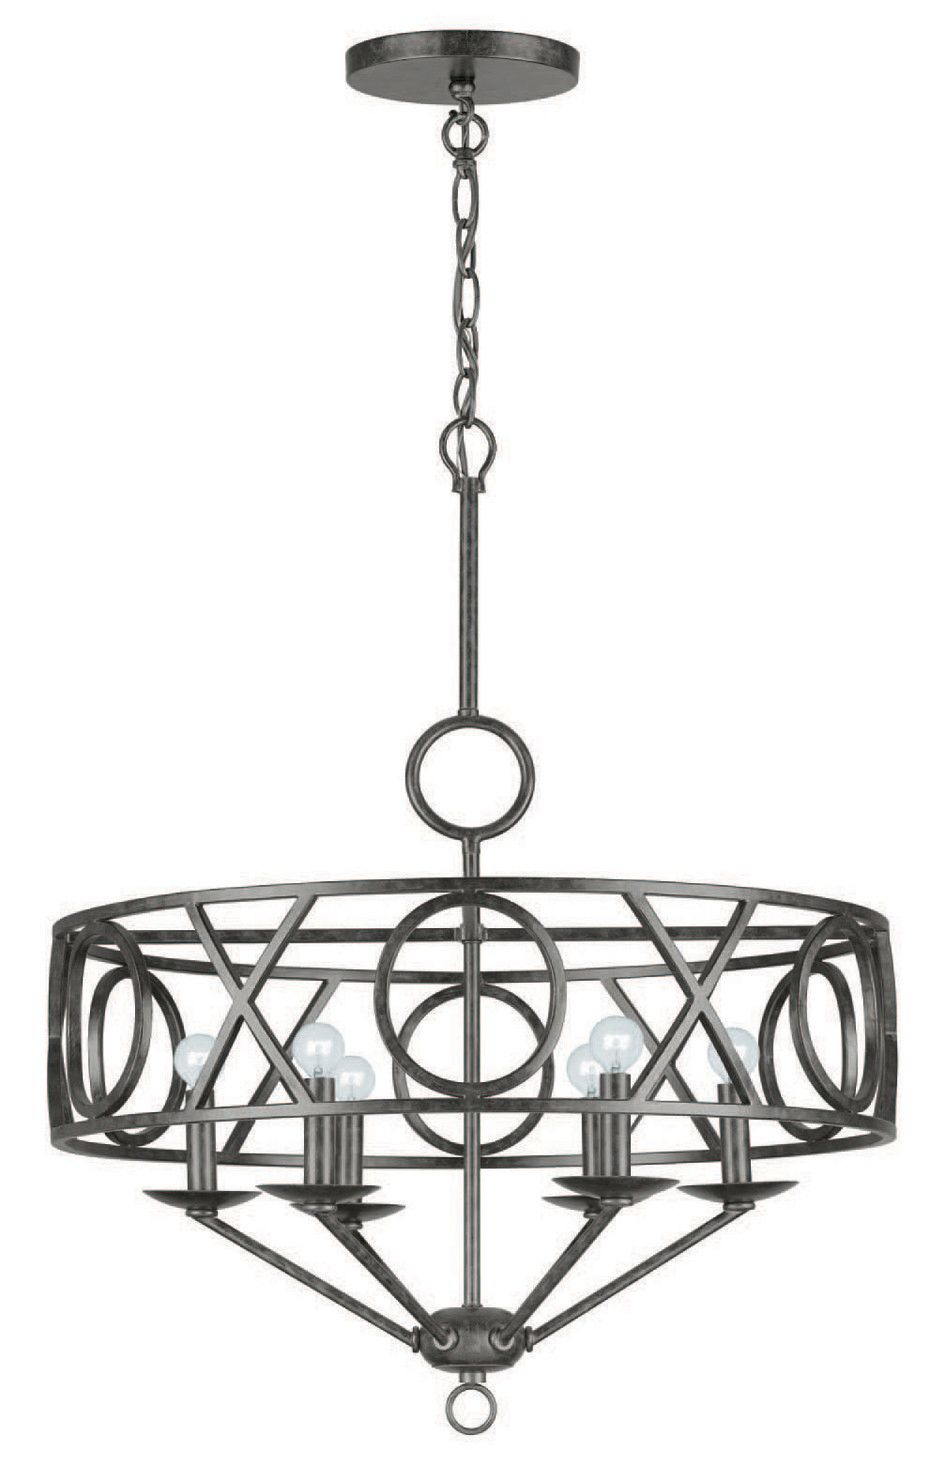 Crystorama six light chandeliers bronze xo chandelier foyer the arts and crafts influence is obvious in this odette chandelier in english bronze composed of wrought iron and electrical components this chandelier arubaitofo Choice Image